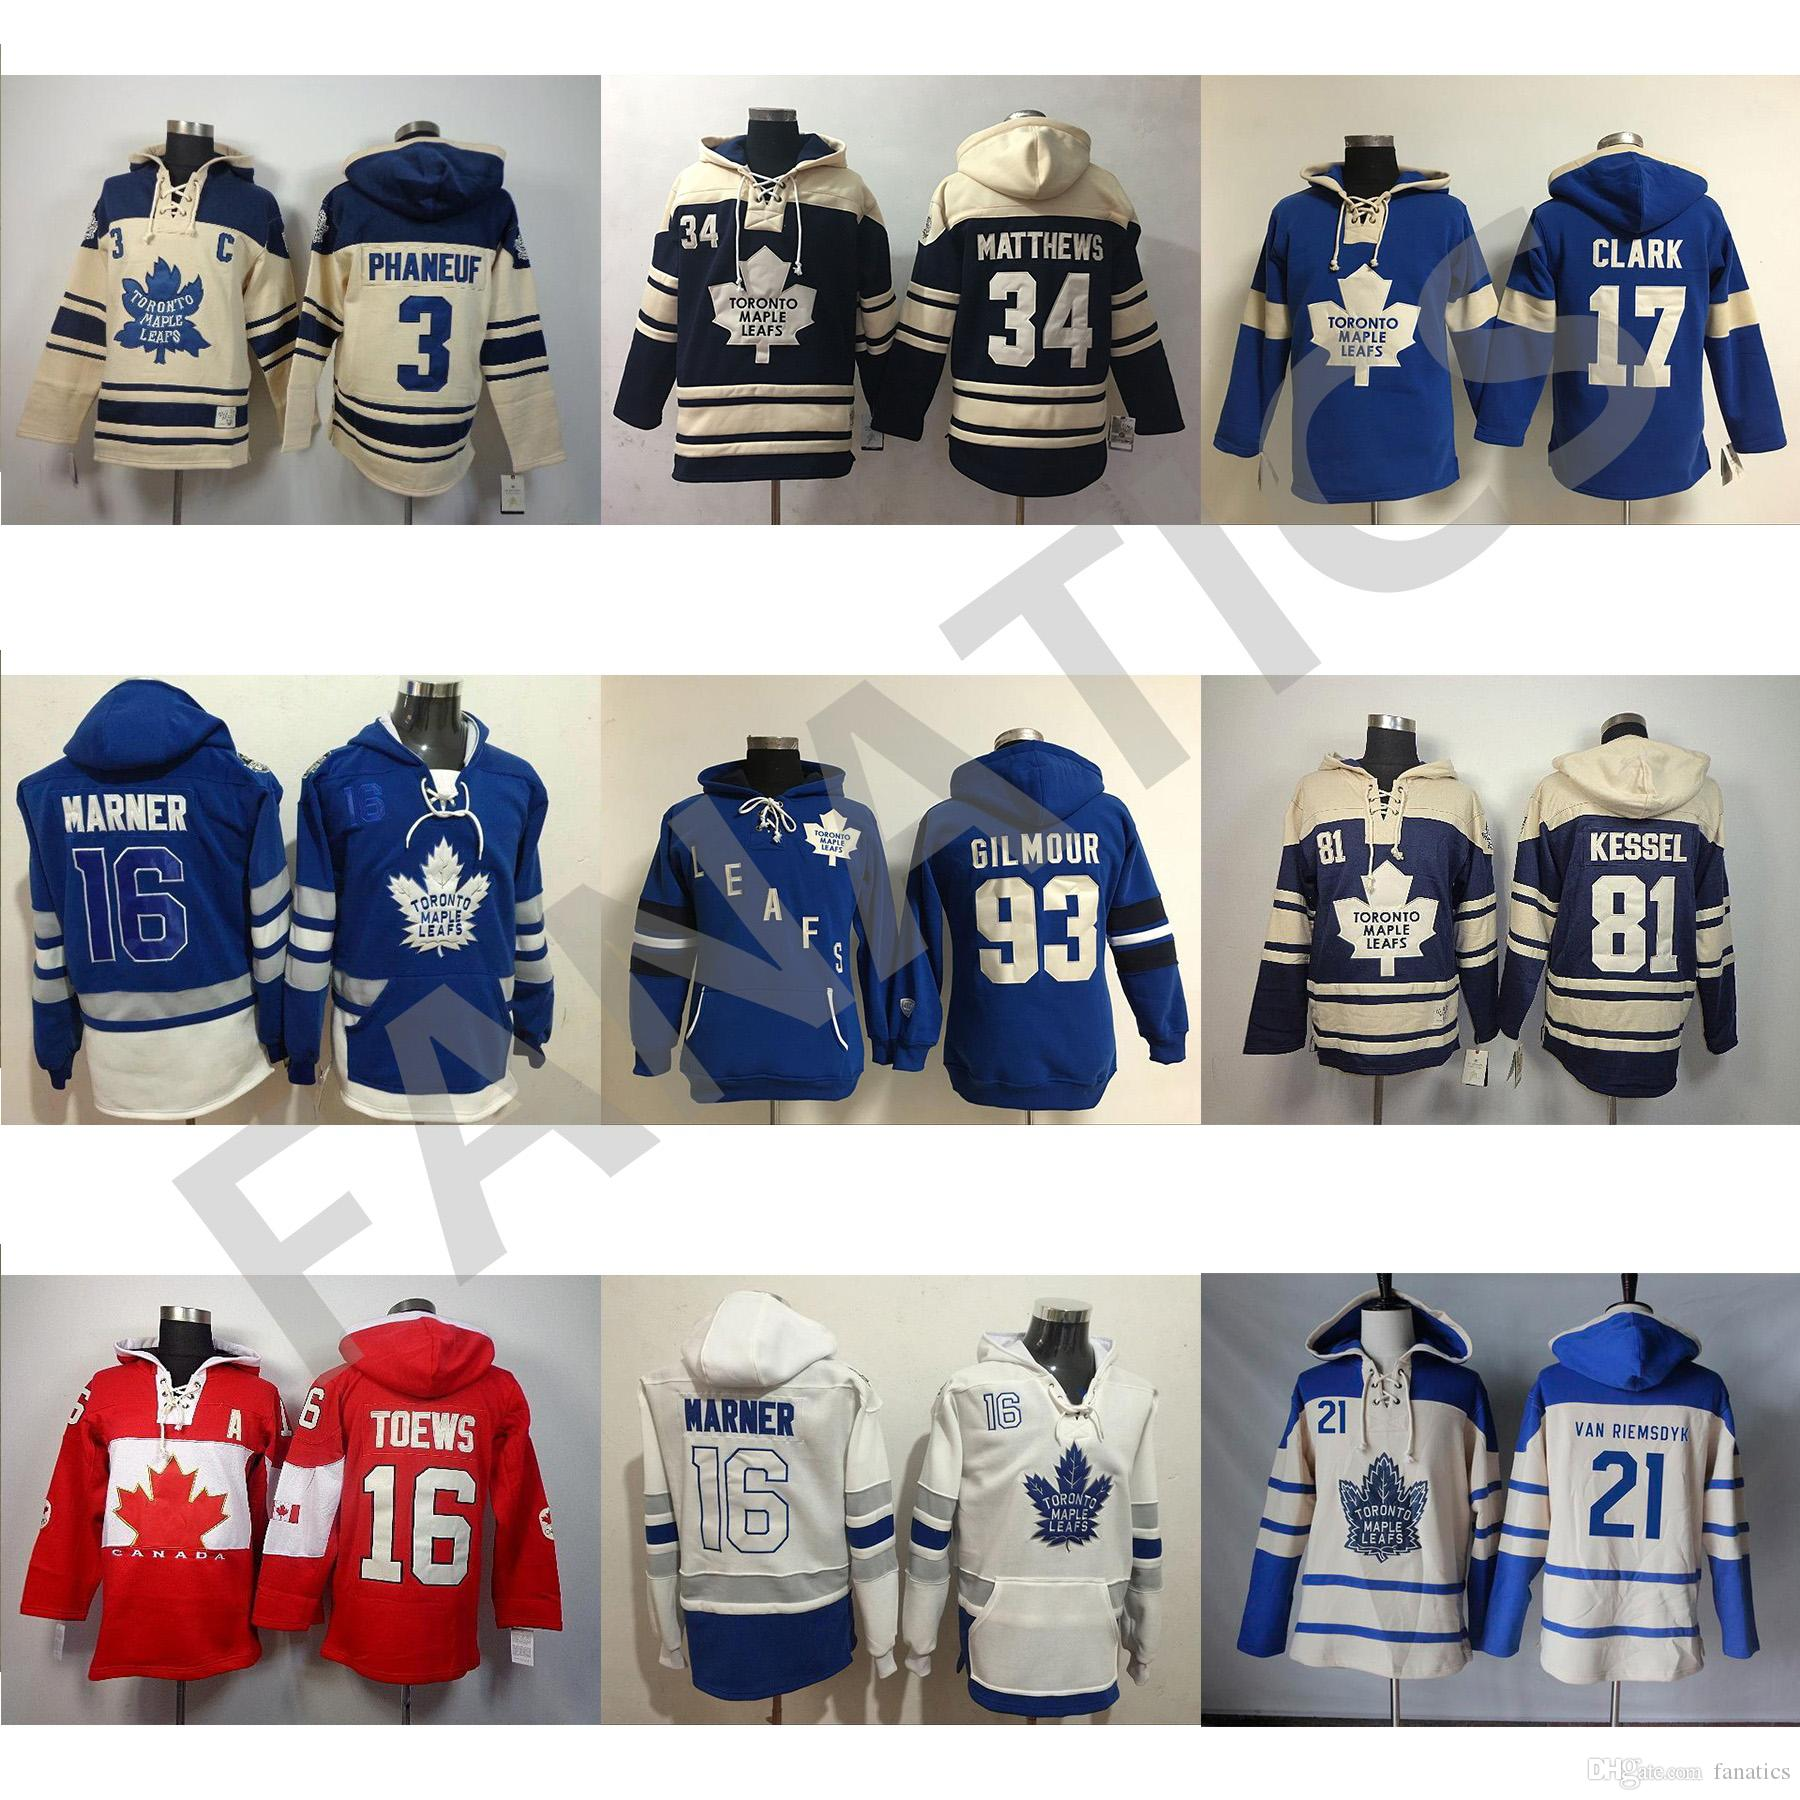 025df1868 Mens Womens Kids Custom Toronto Maple Leafs Hoodies 21 James Van 81 Phil  Kessel 34 Auston Matthews 91 John Tavares 31 Frederik Andersen 19 Joffrey  Lupul ...